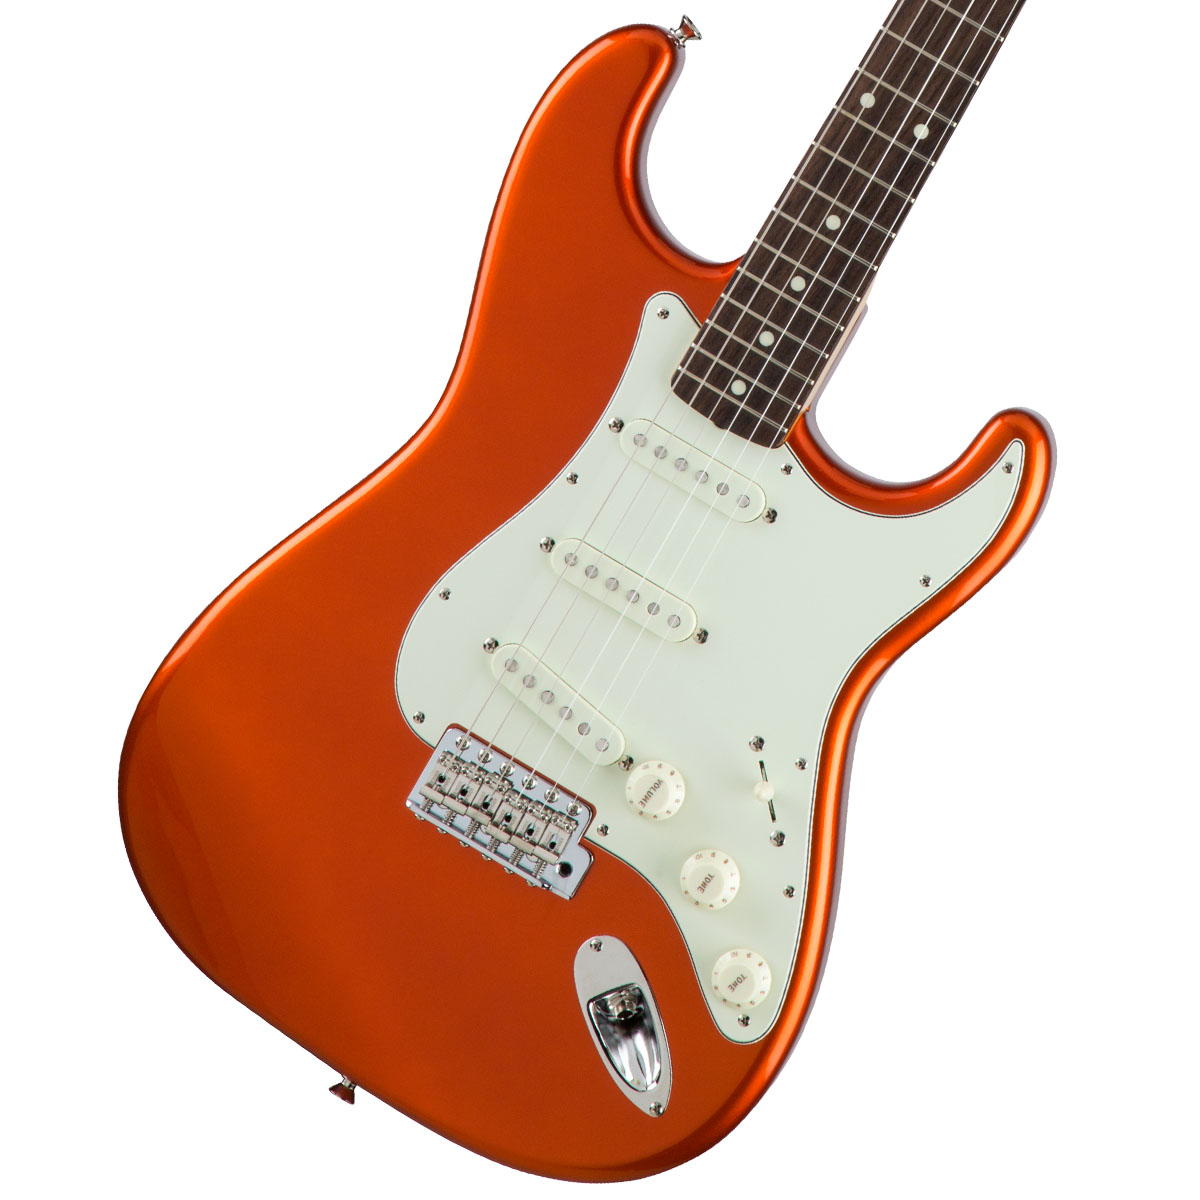 Fender / Made in Japan Traditional 60s Stratocaster Rosewood Fingerboard Candy Tangerine 《カスタムショップのお手入れ用品を進呈/+671038200》